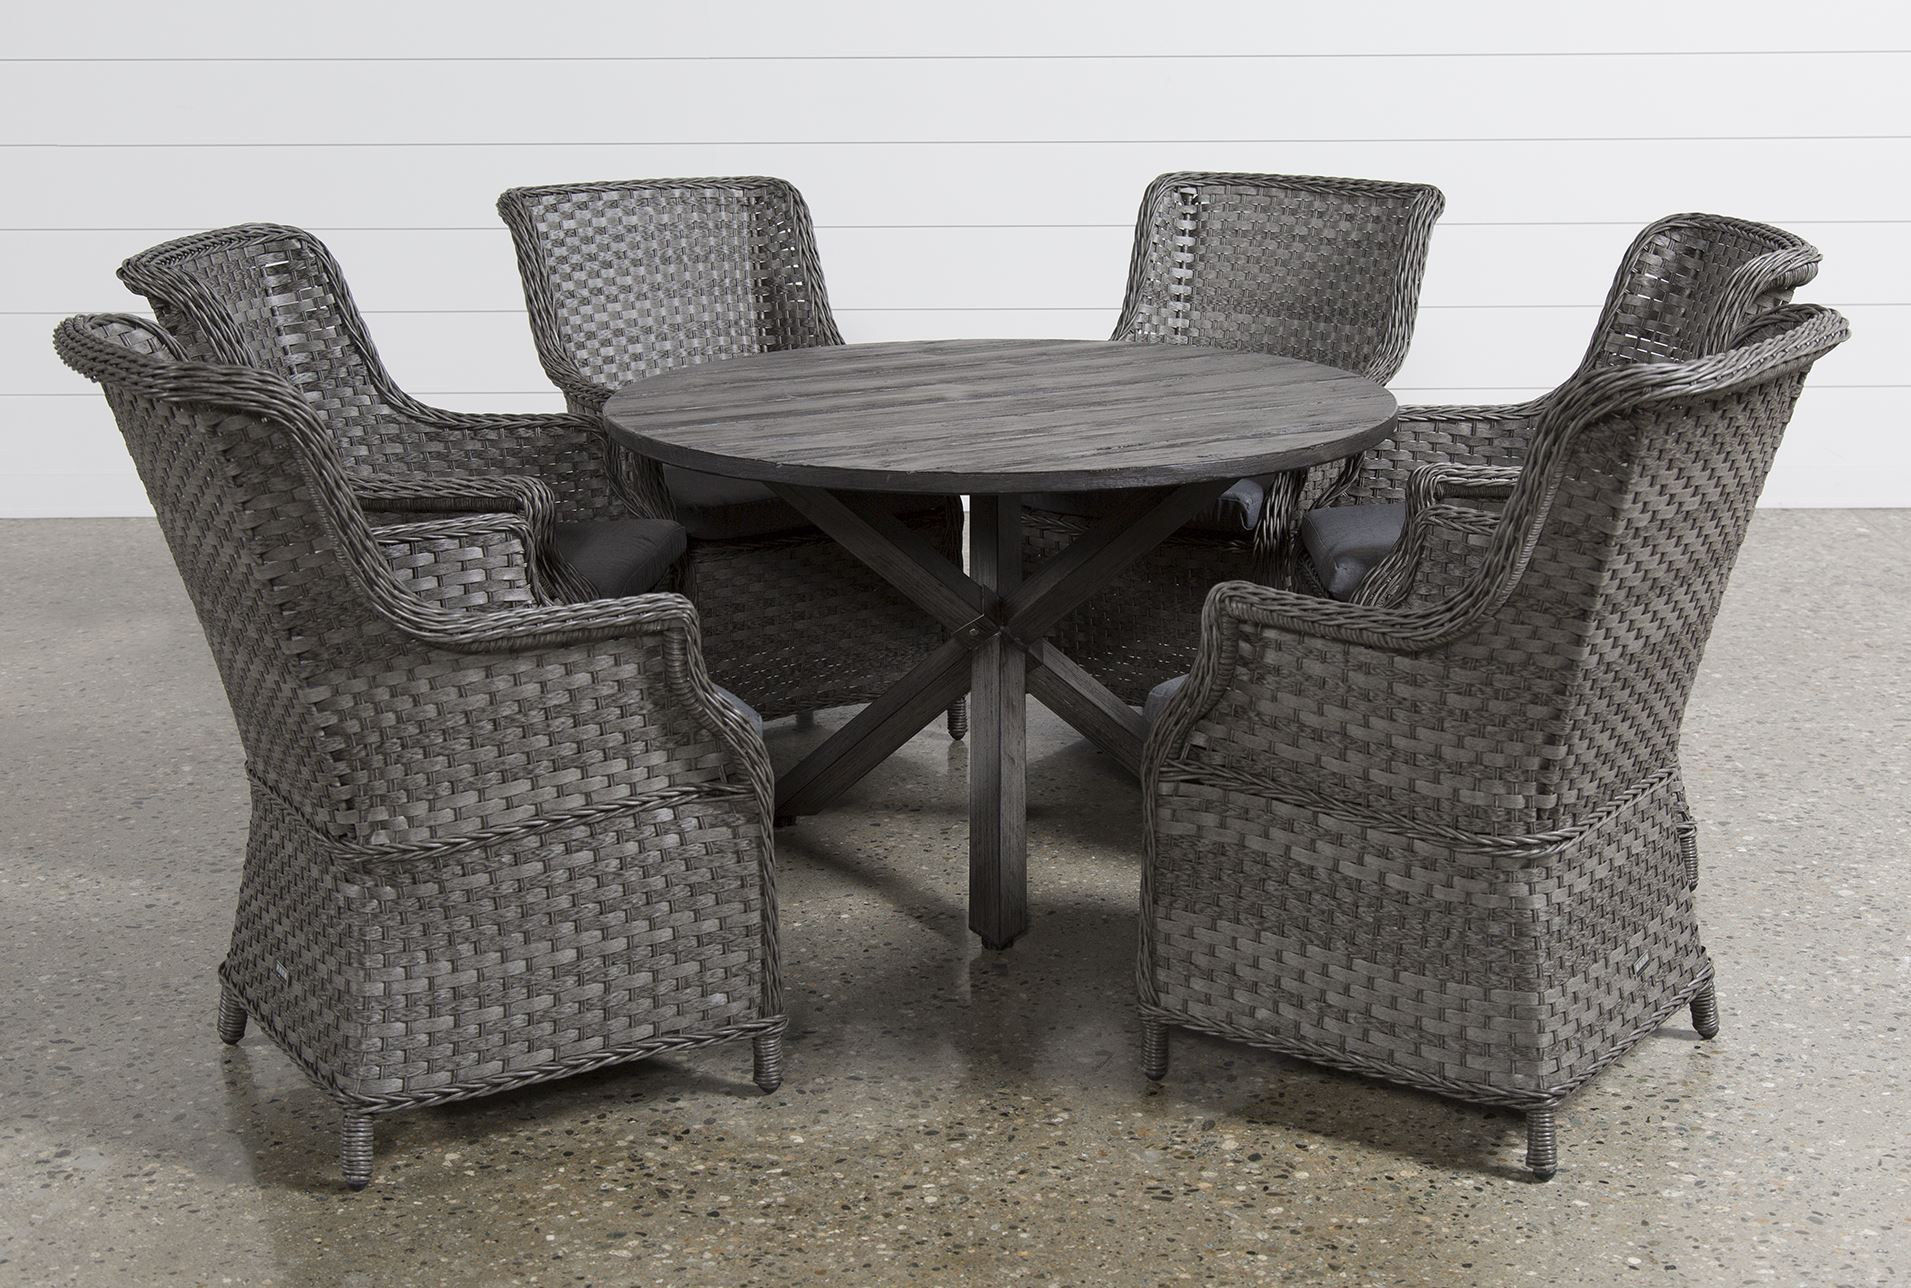 preloadtortuga 7 piece round dining set w san martin ii chairs back